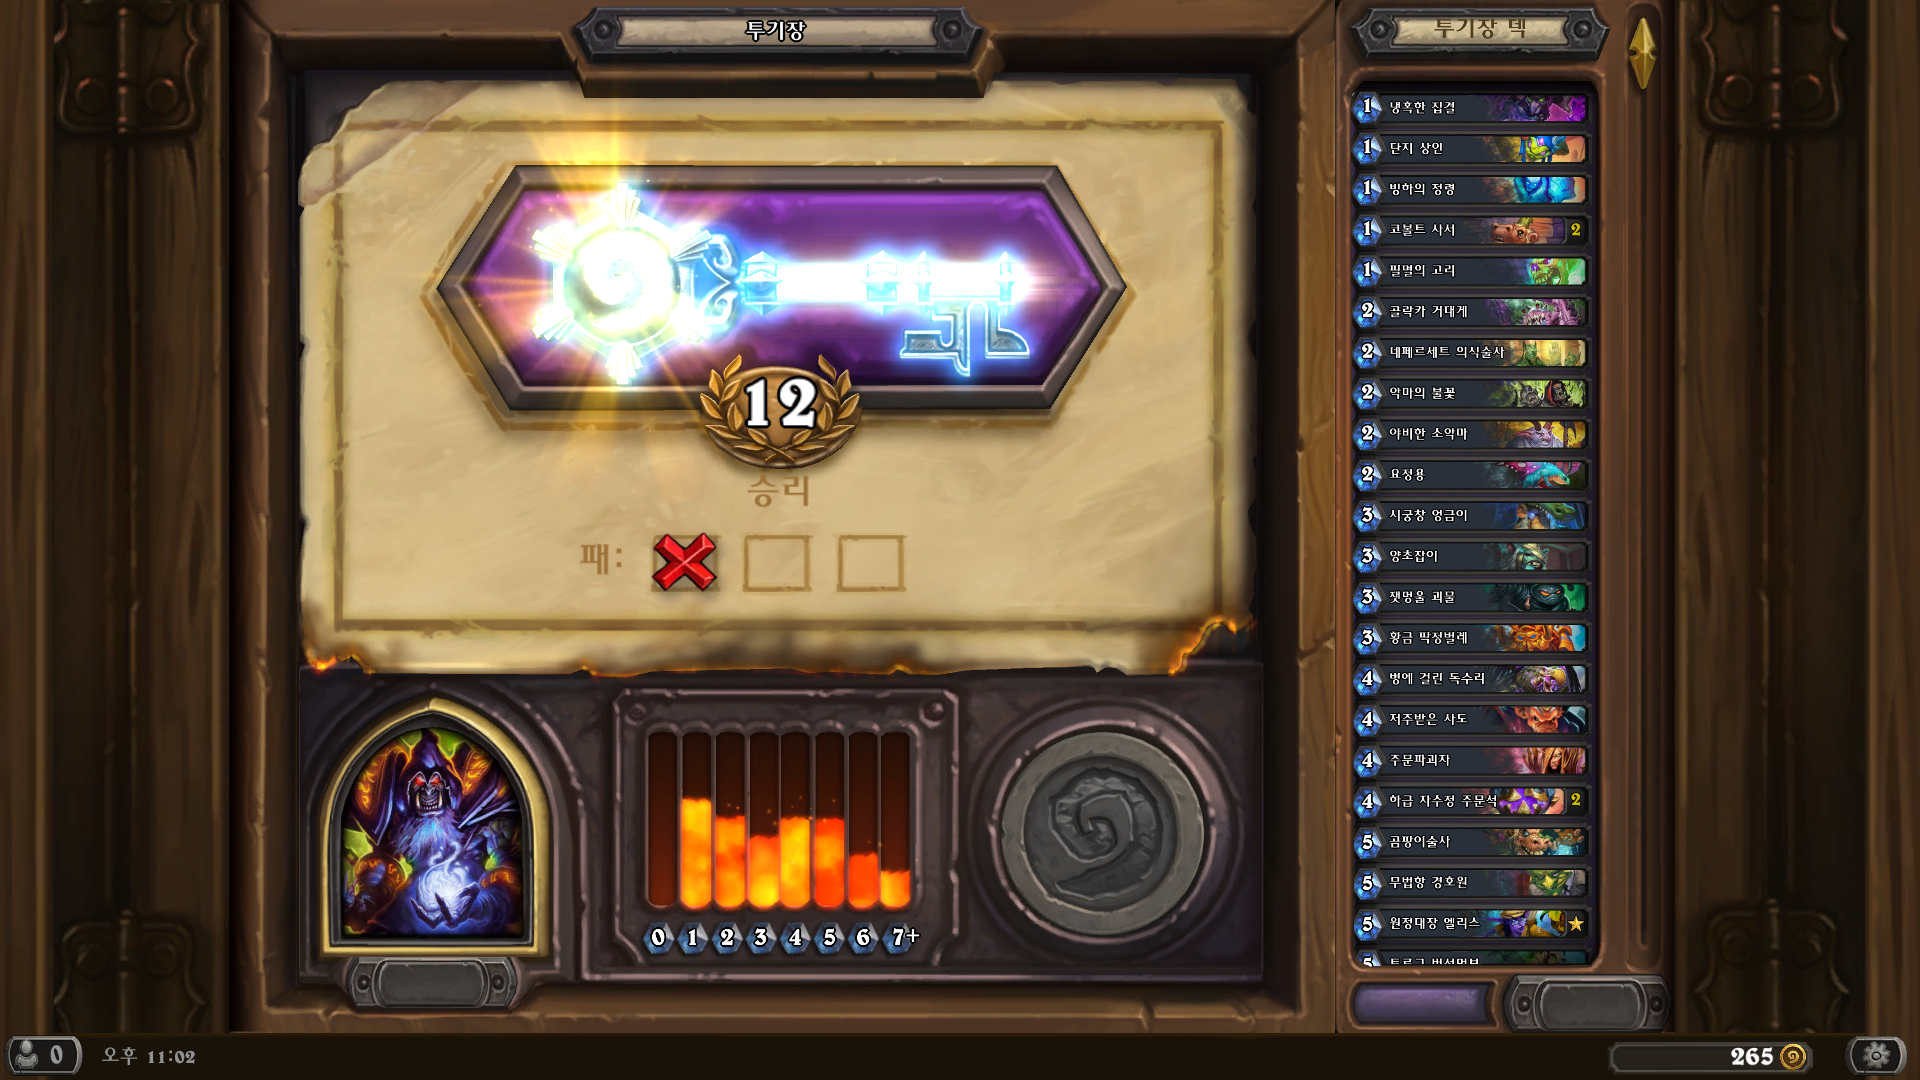 Hearthstone Screenshot 09-14-19 23.02.27.png